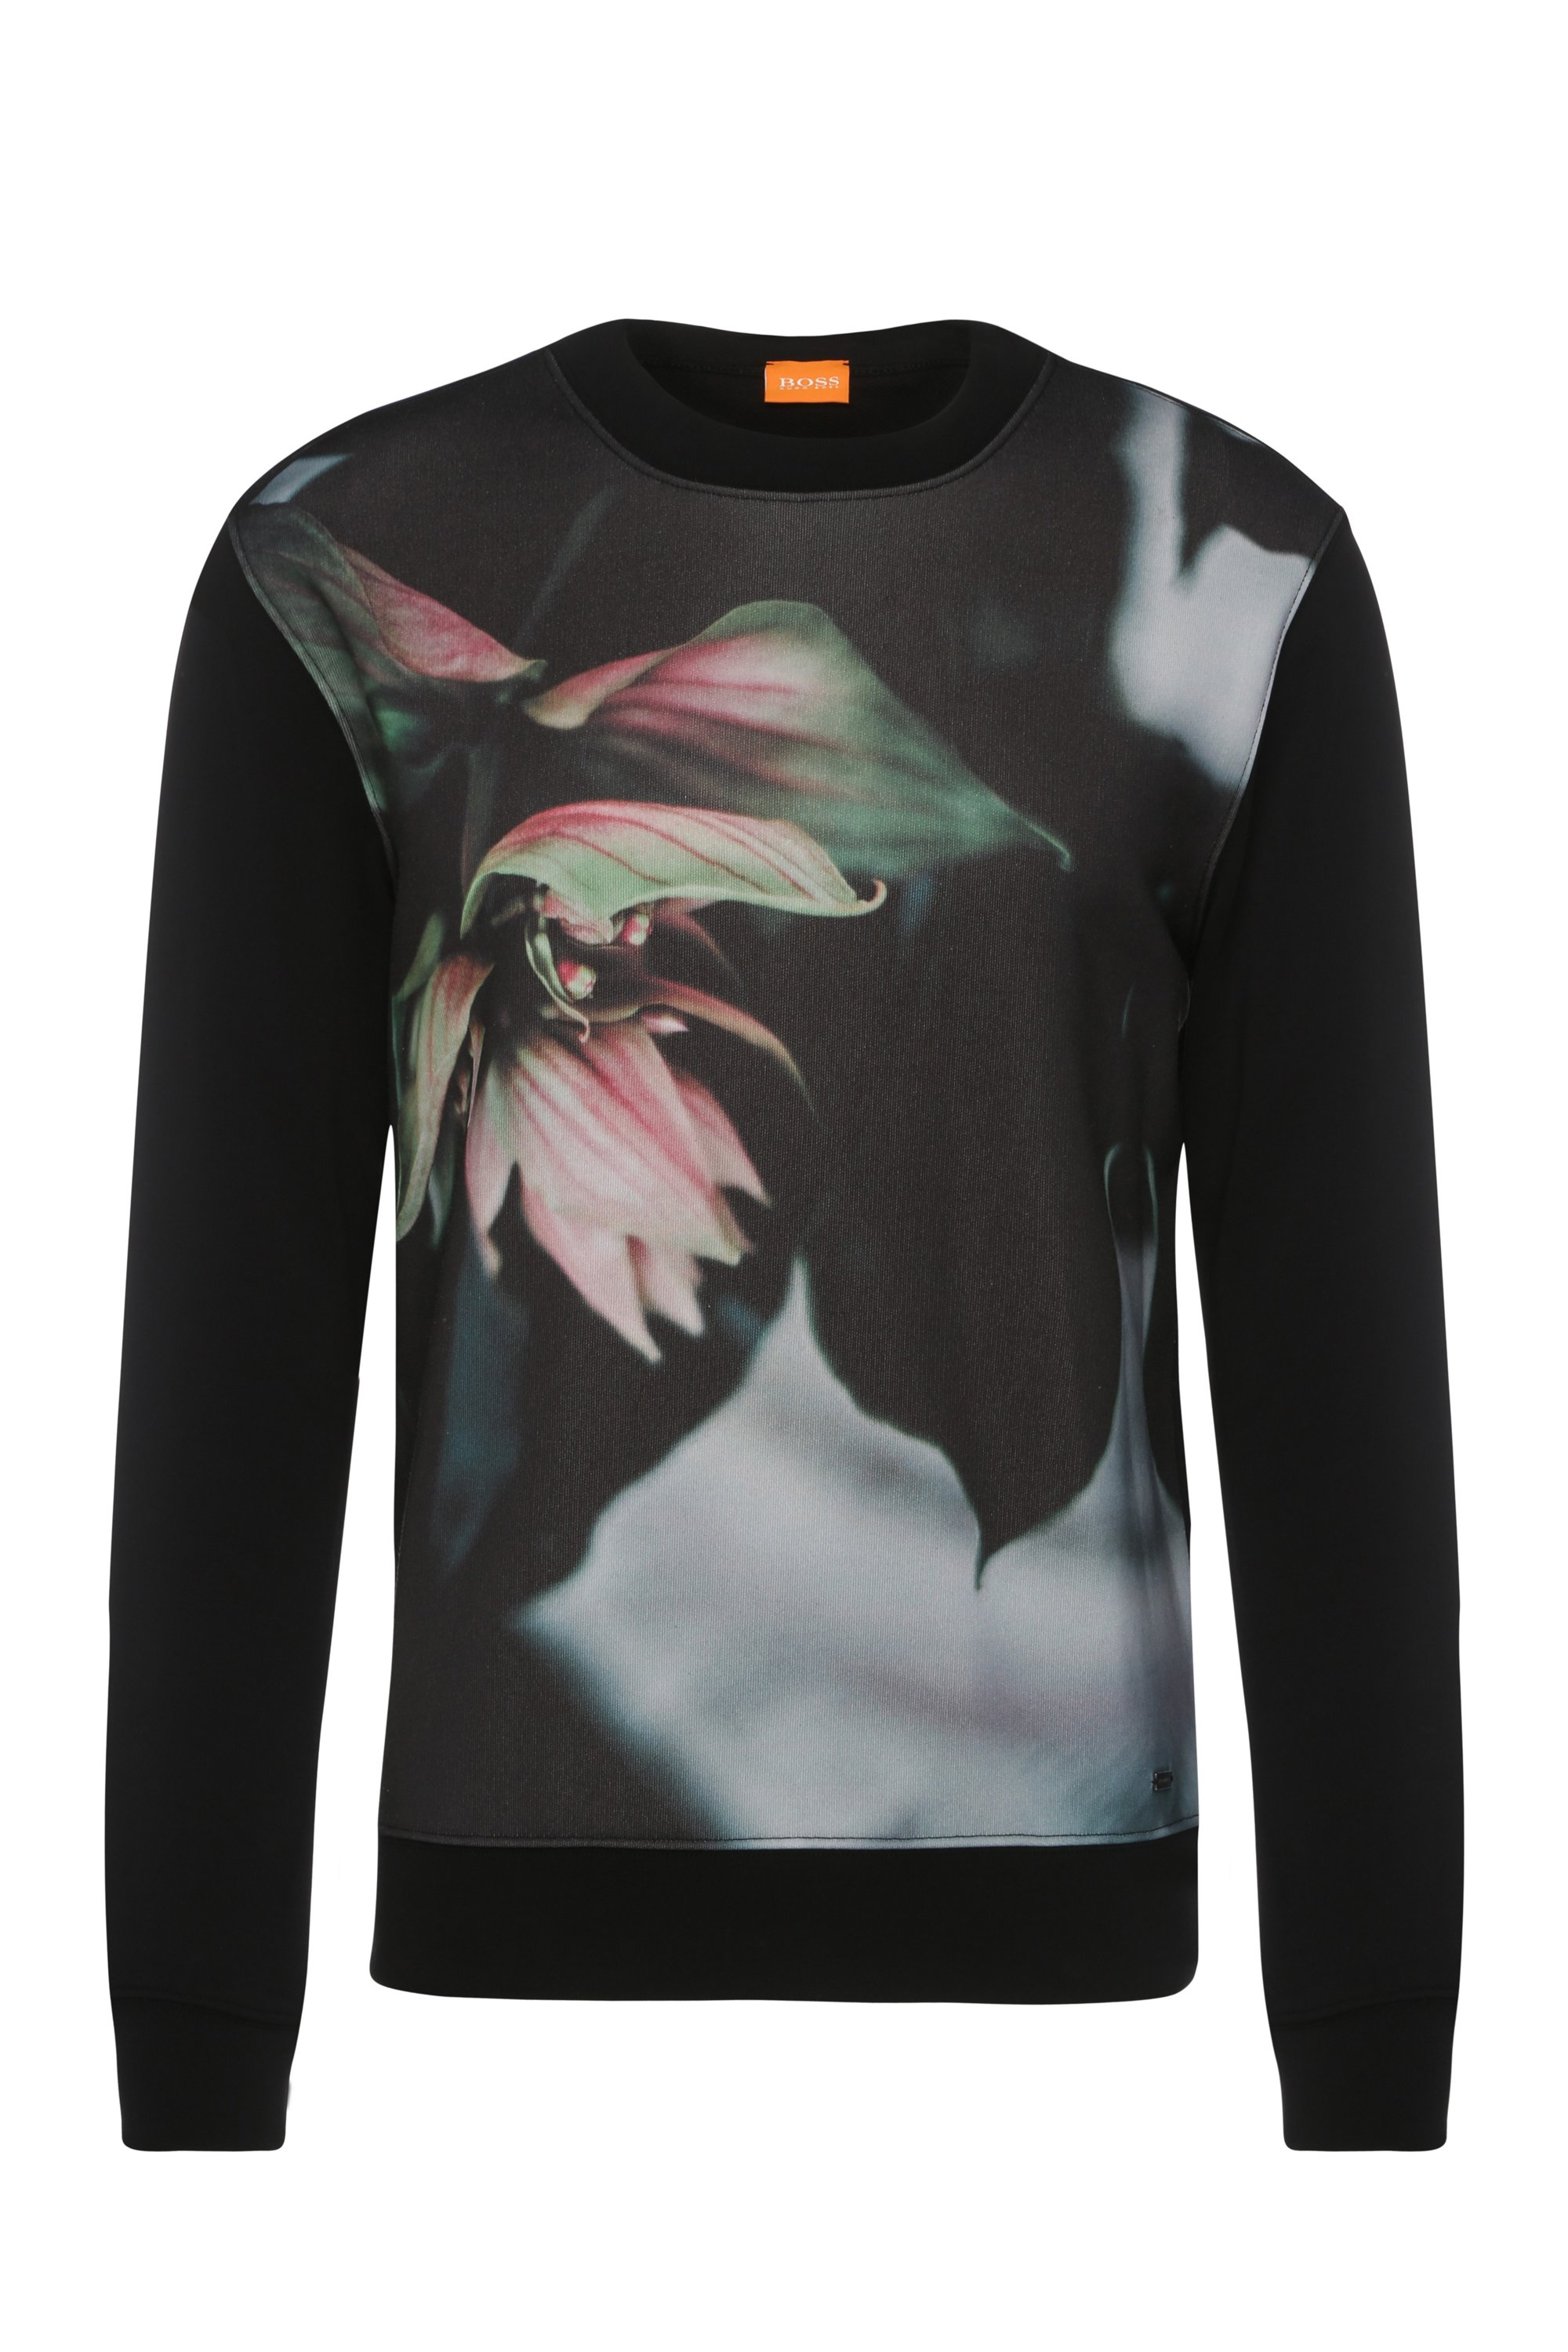 Cotton Lily Print Sweatshirt | Whit, Black